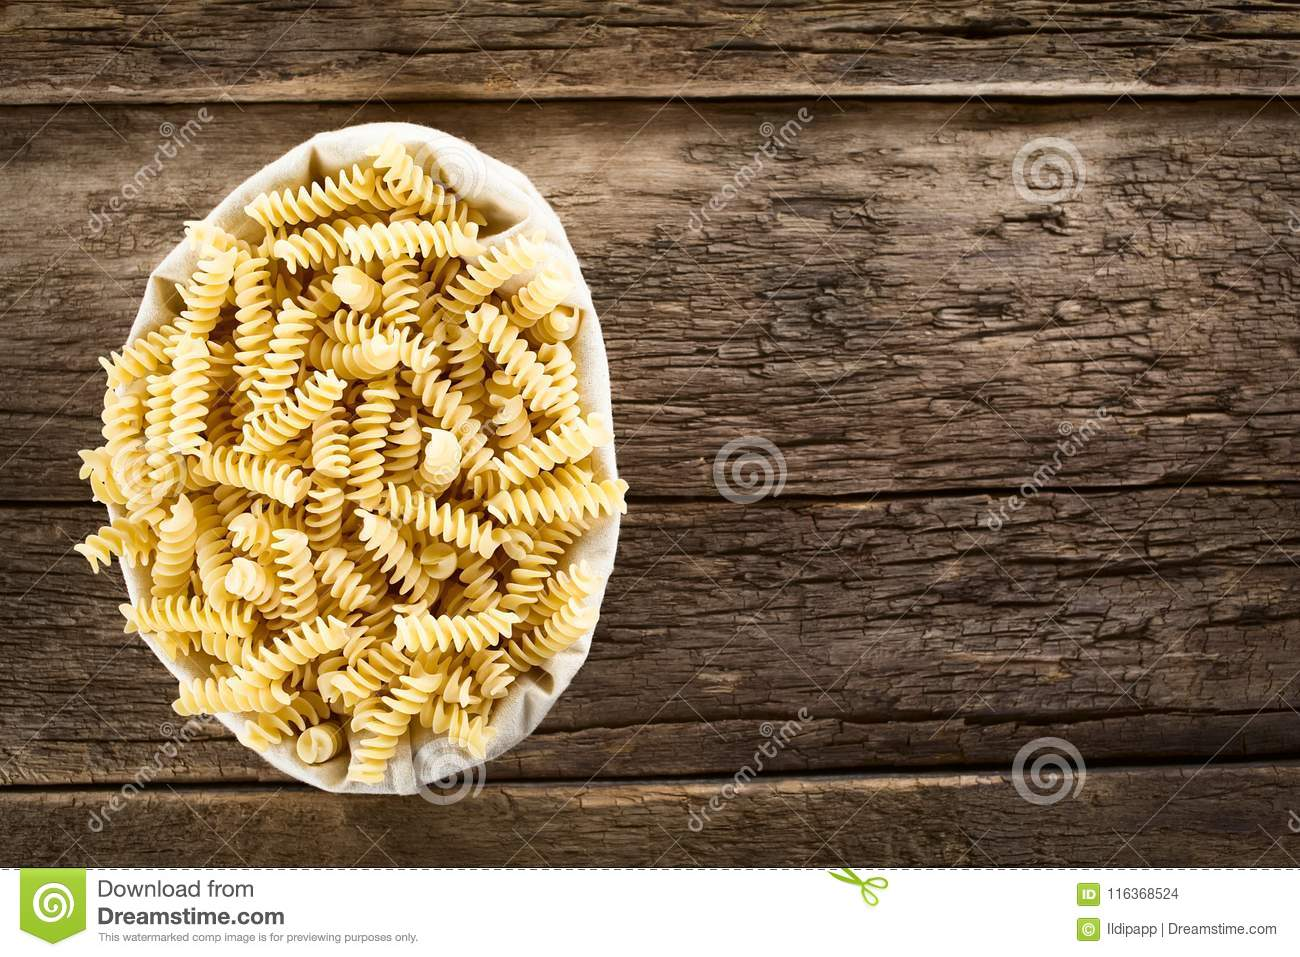 Raw Rotini or Fusilli Pasta